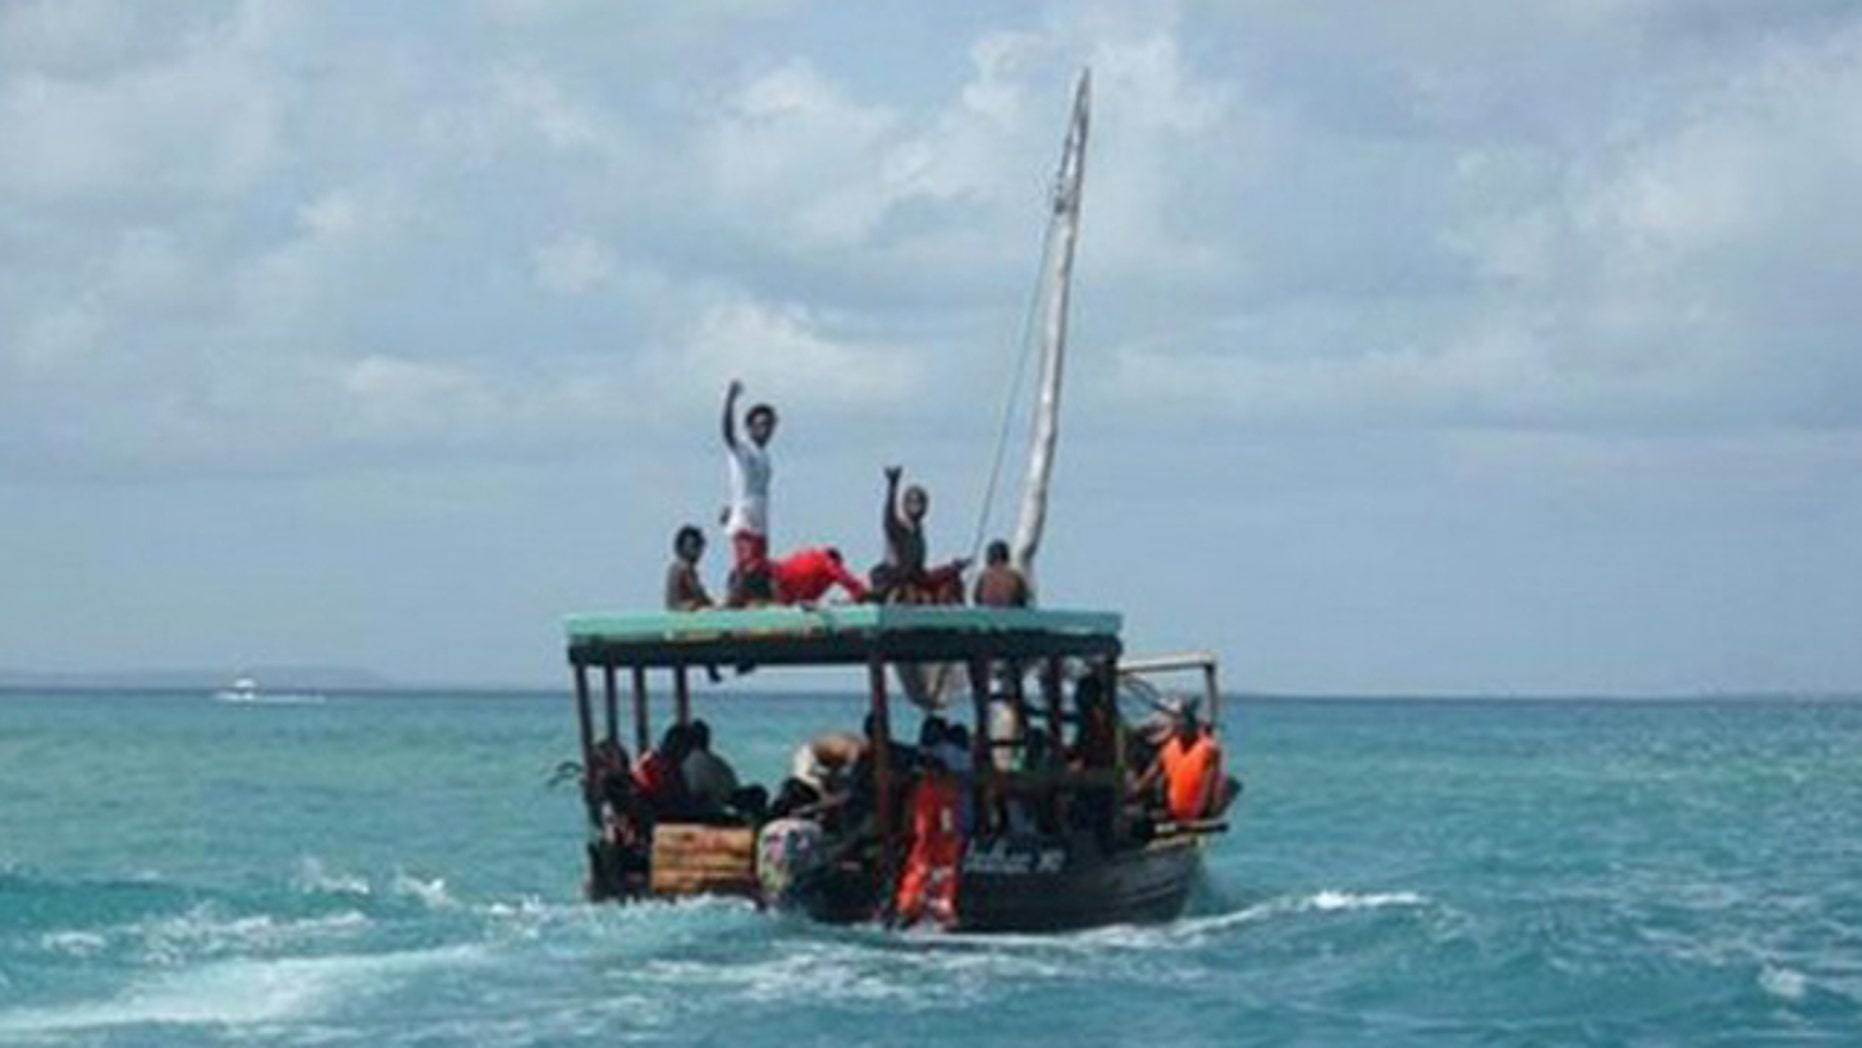 Sept. 10: A Zanzibar fishing vessel carries the survivors of the ferry crash ashore.